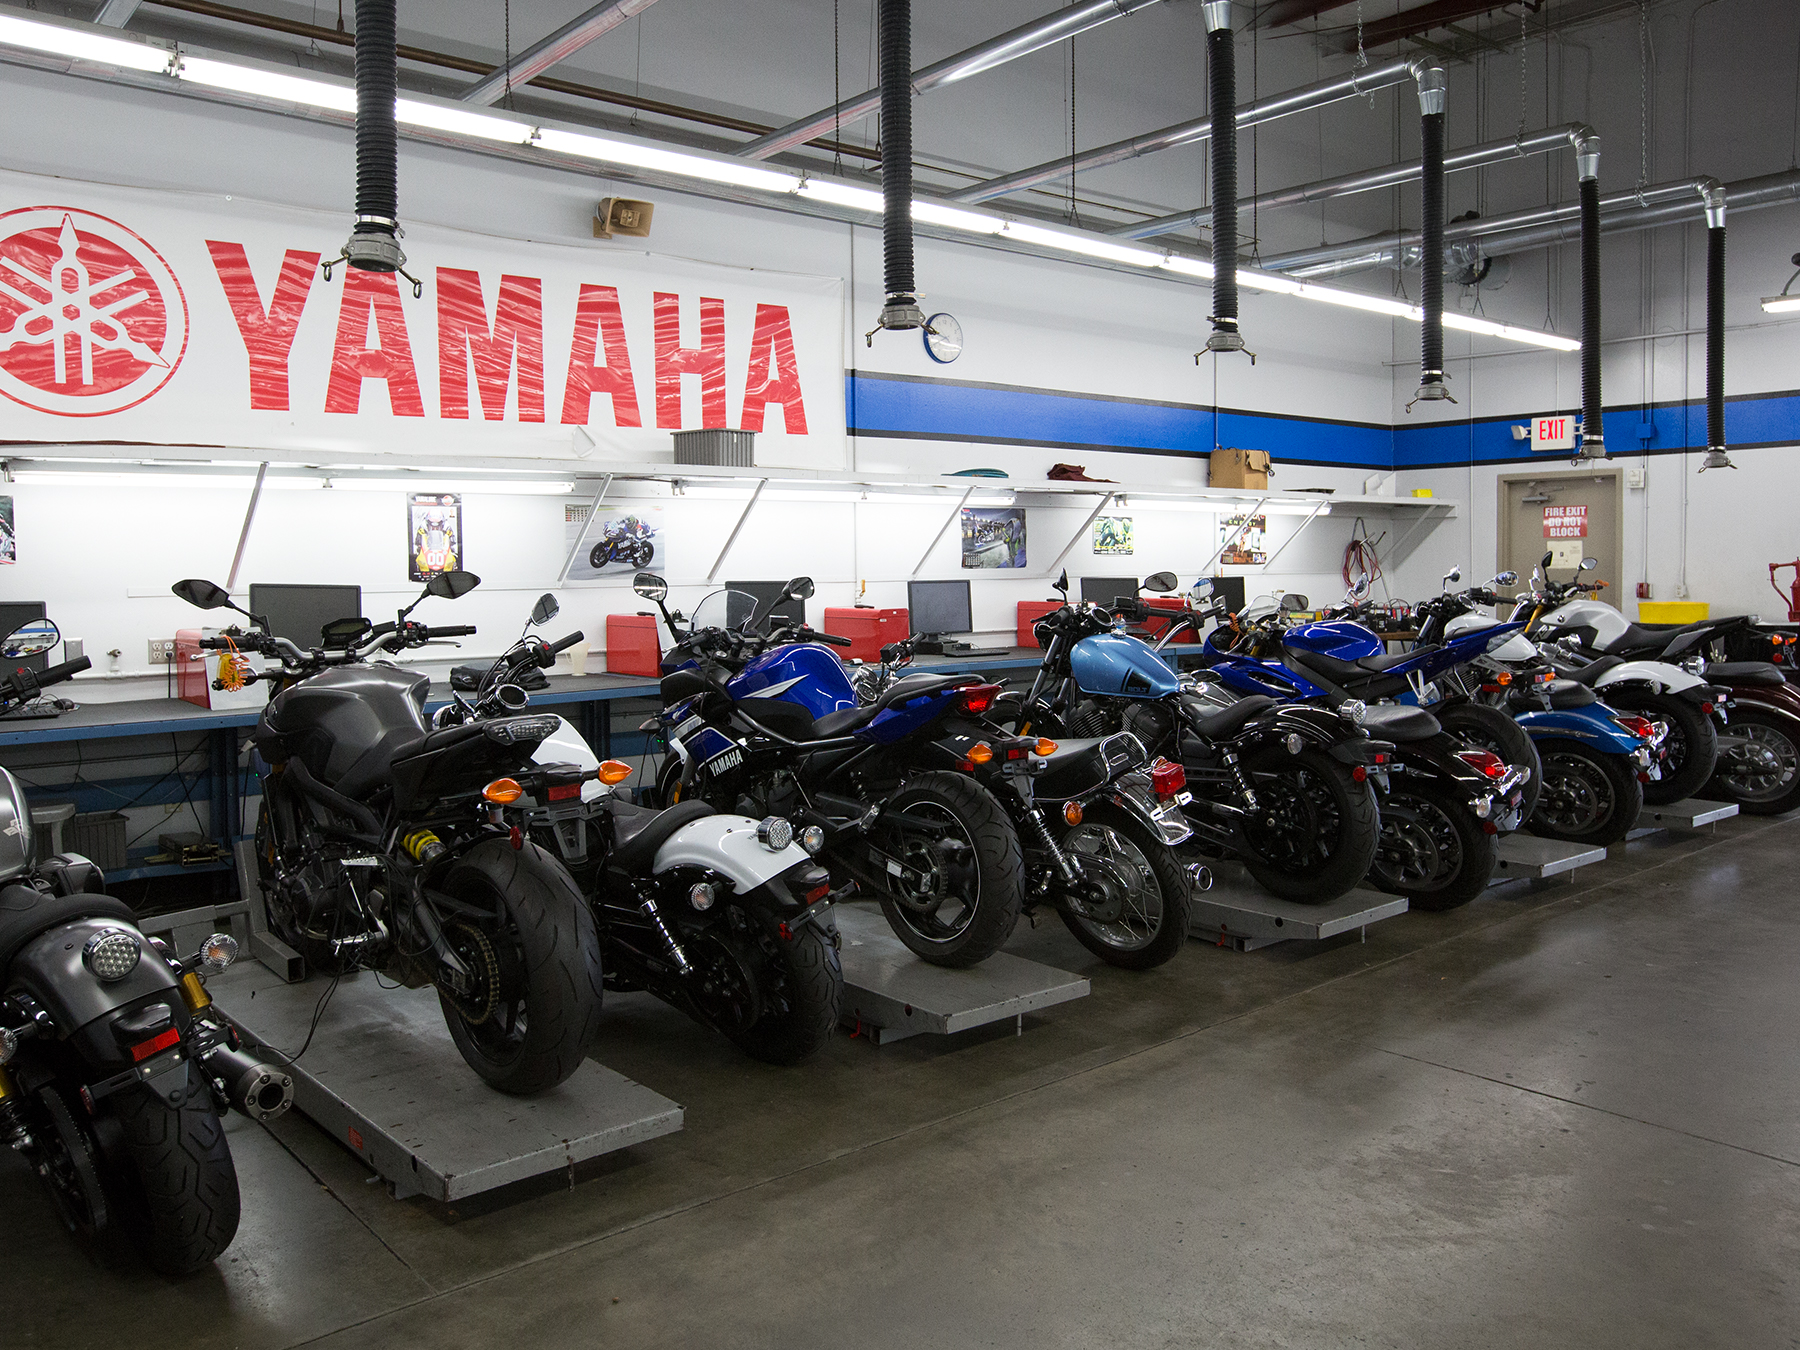 Wide angle photo of motorcycle in the Yamaha lab